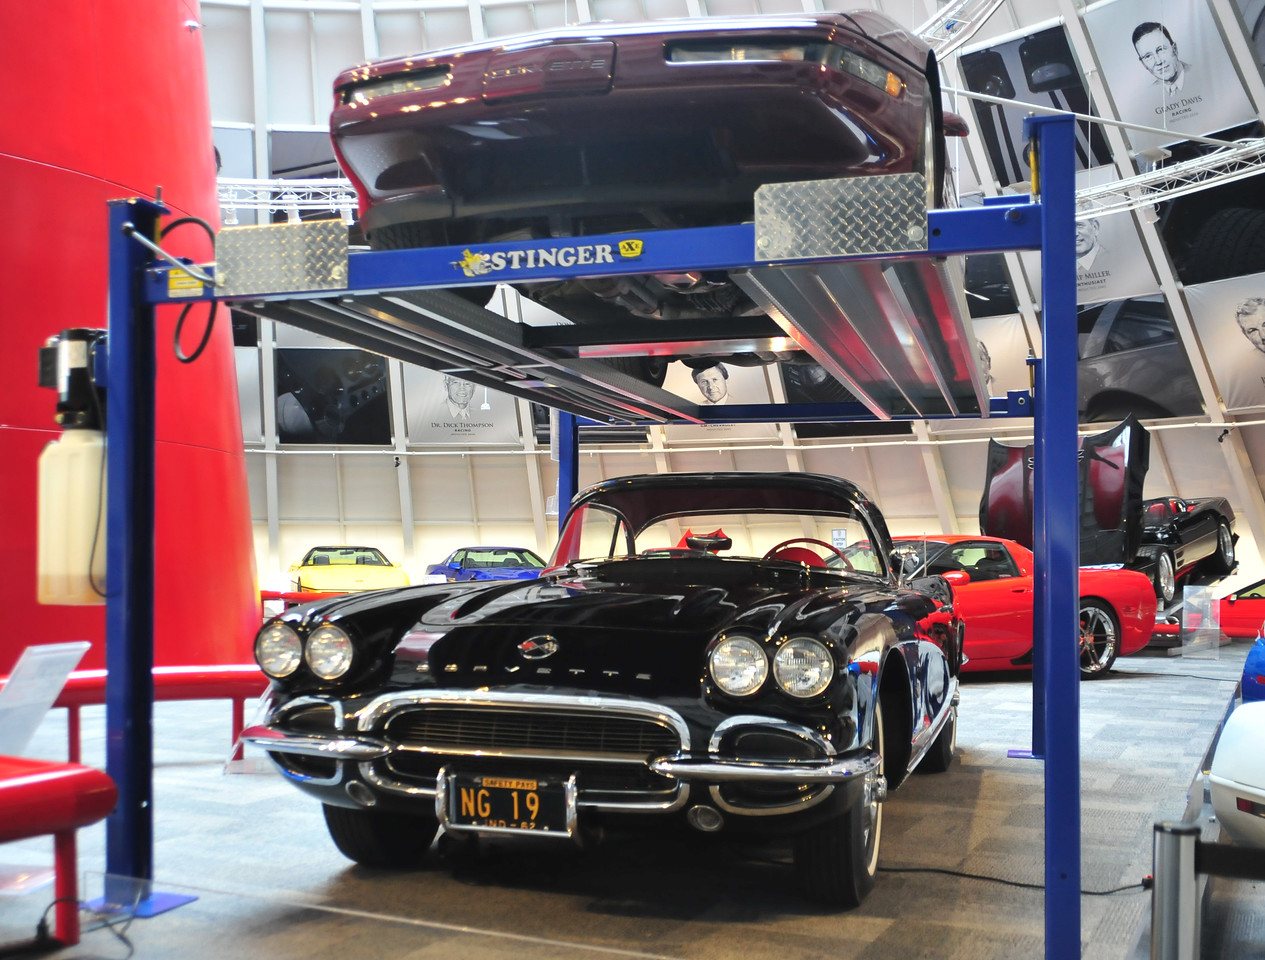 Pictured you can see the 1993 Ruby Red, 1962 Black, 2013 Mallet Hammer and 1993 ZR-1 Spyder.  Permission given to use this image with credit to the National Corvette Museum